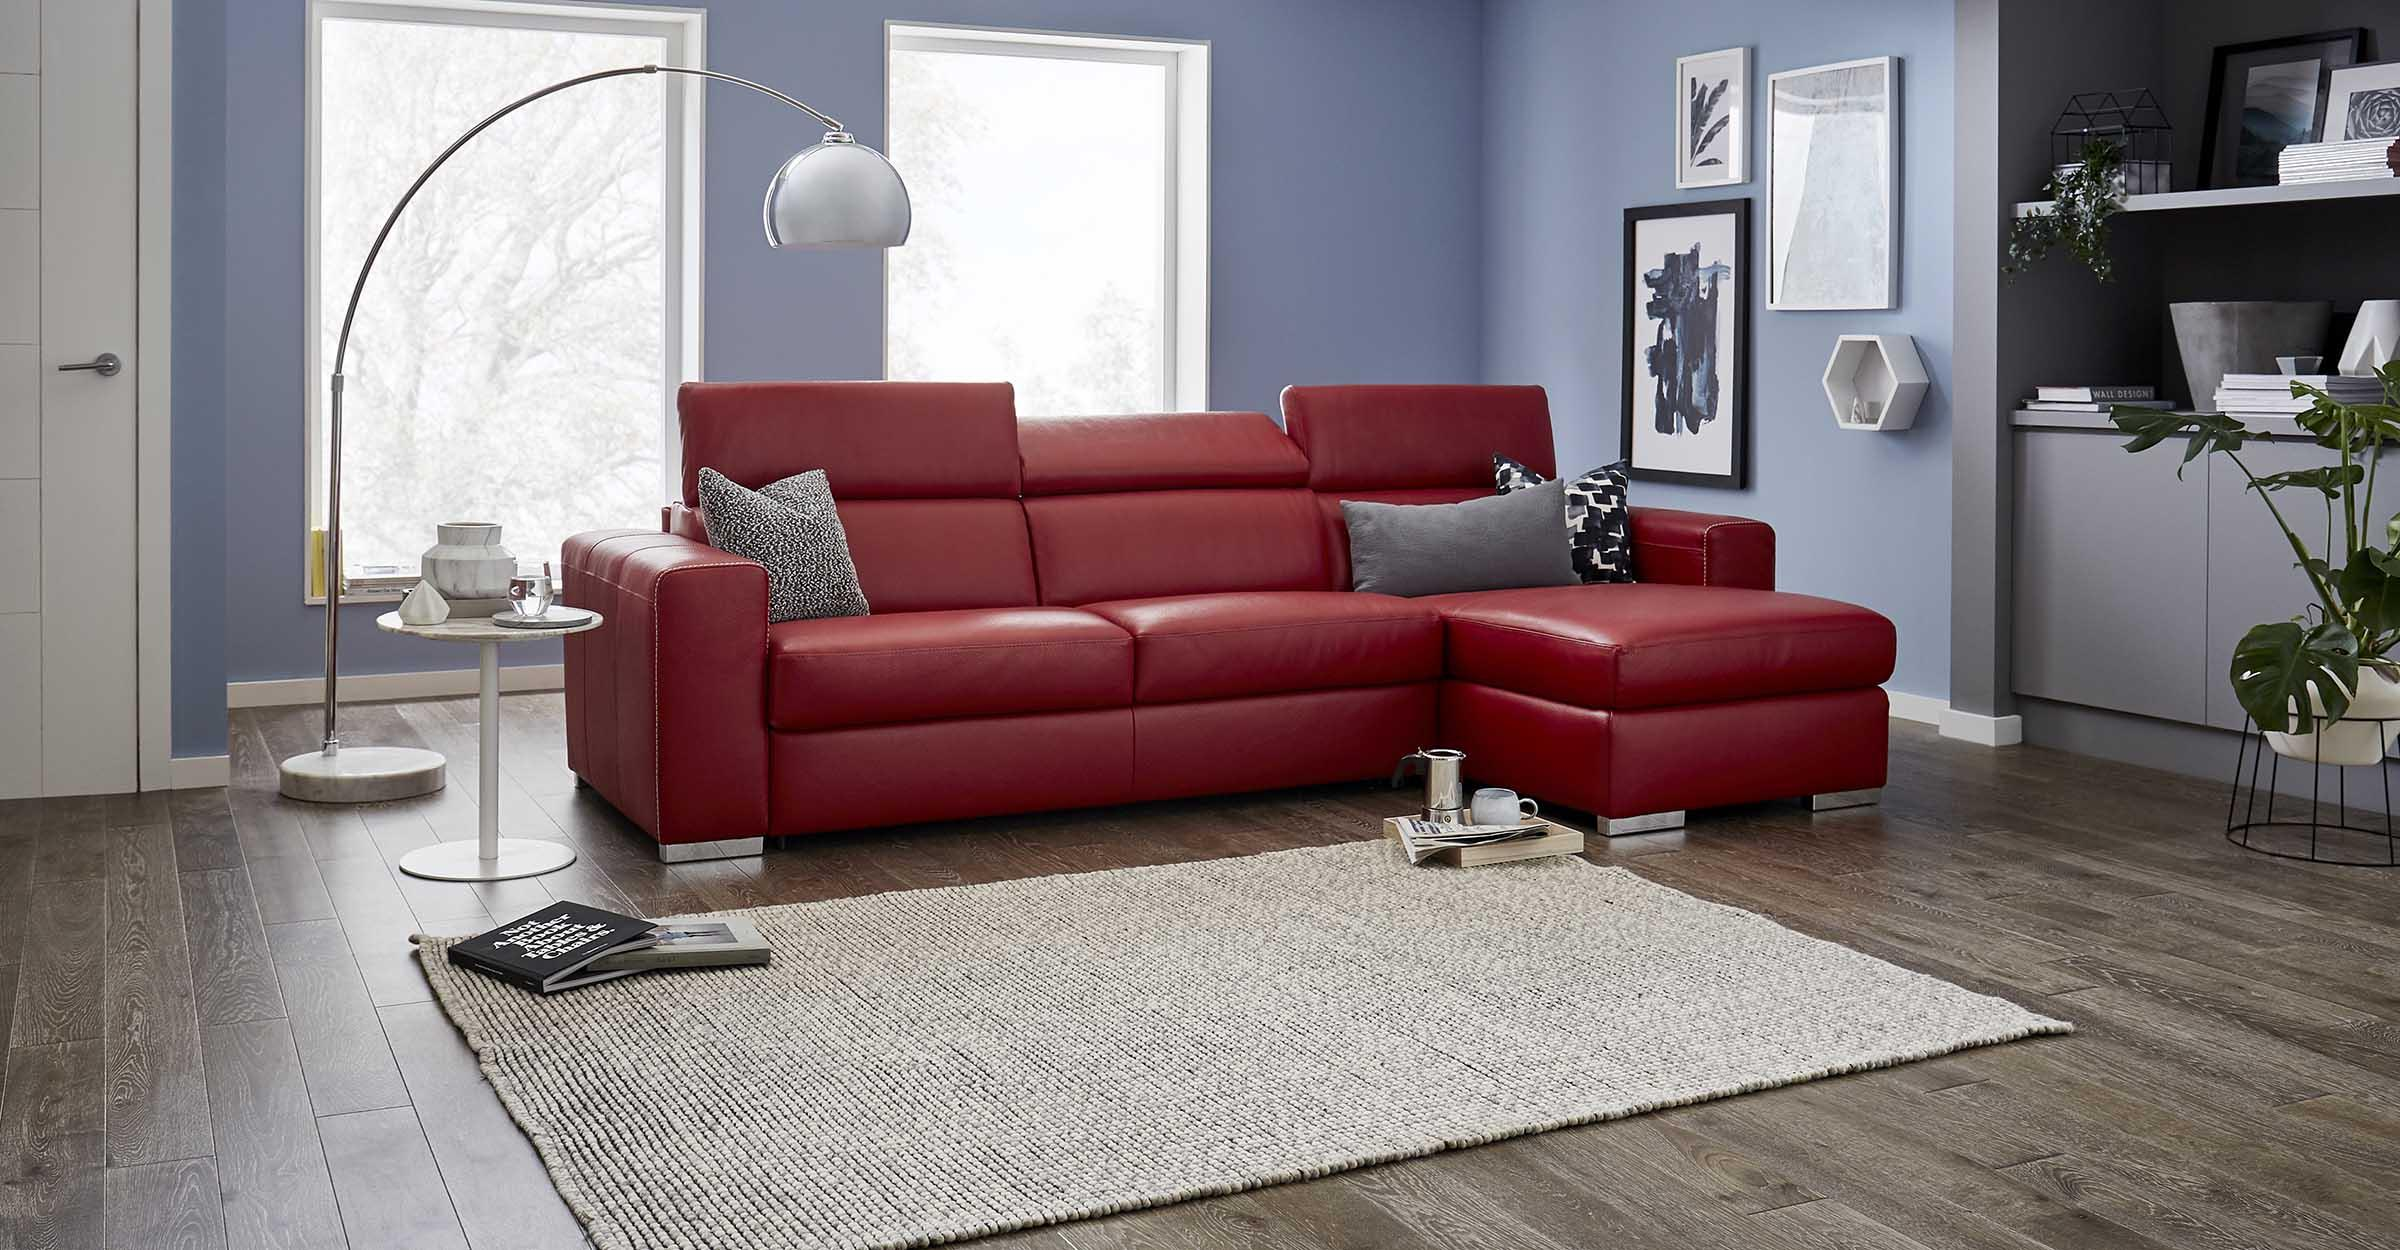 What are the benefits of a modular sofa?